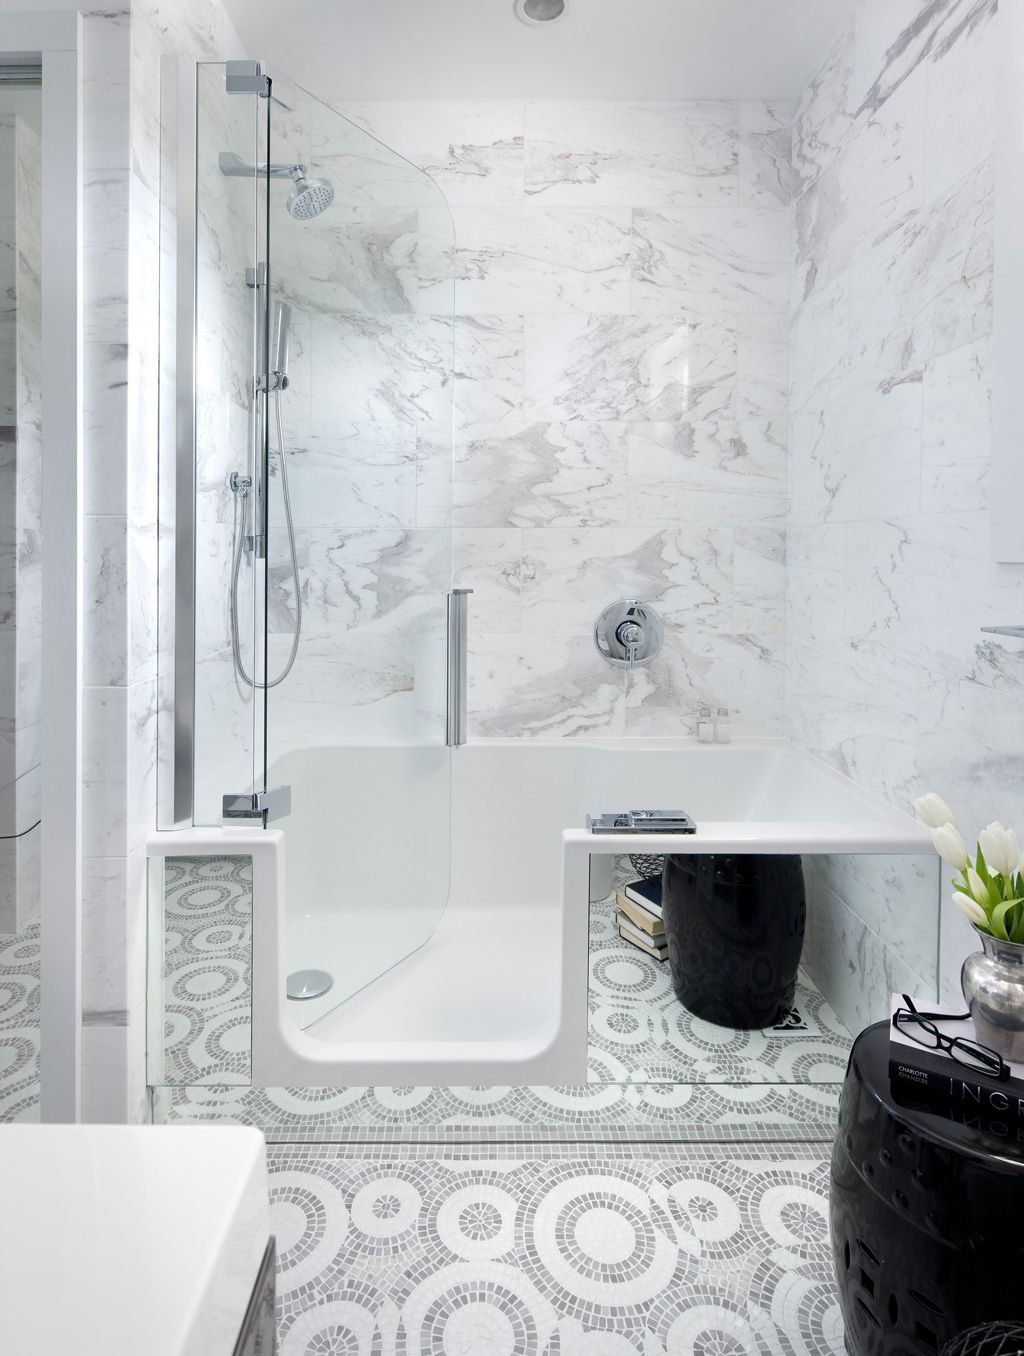 Bathroom shower tub designs - Bathtub And Shower Combo Ideas